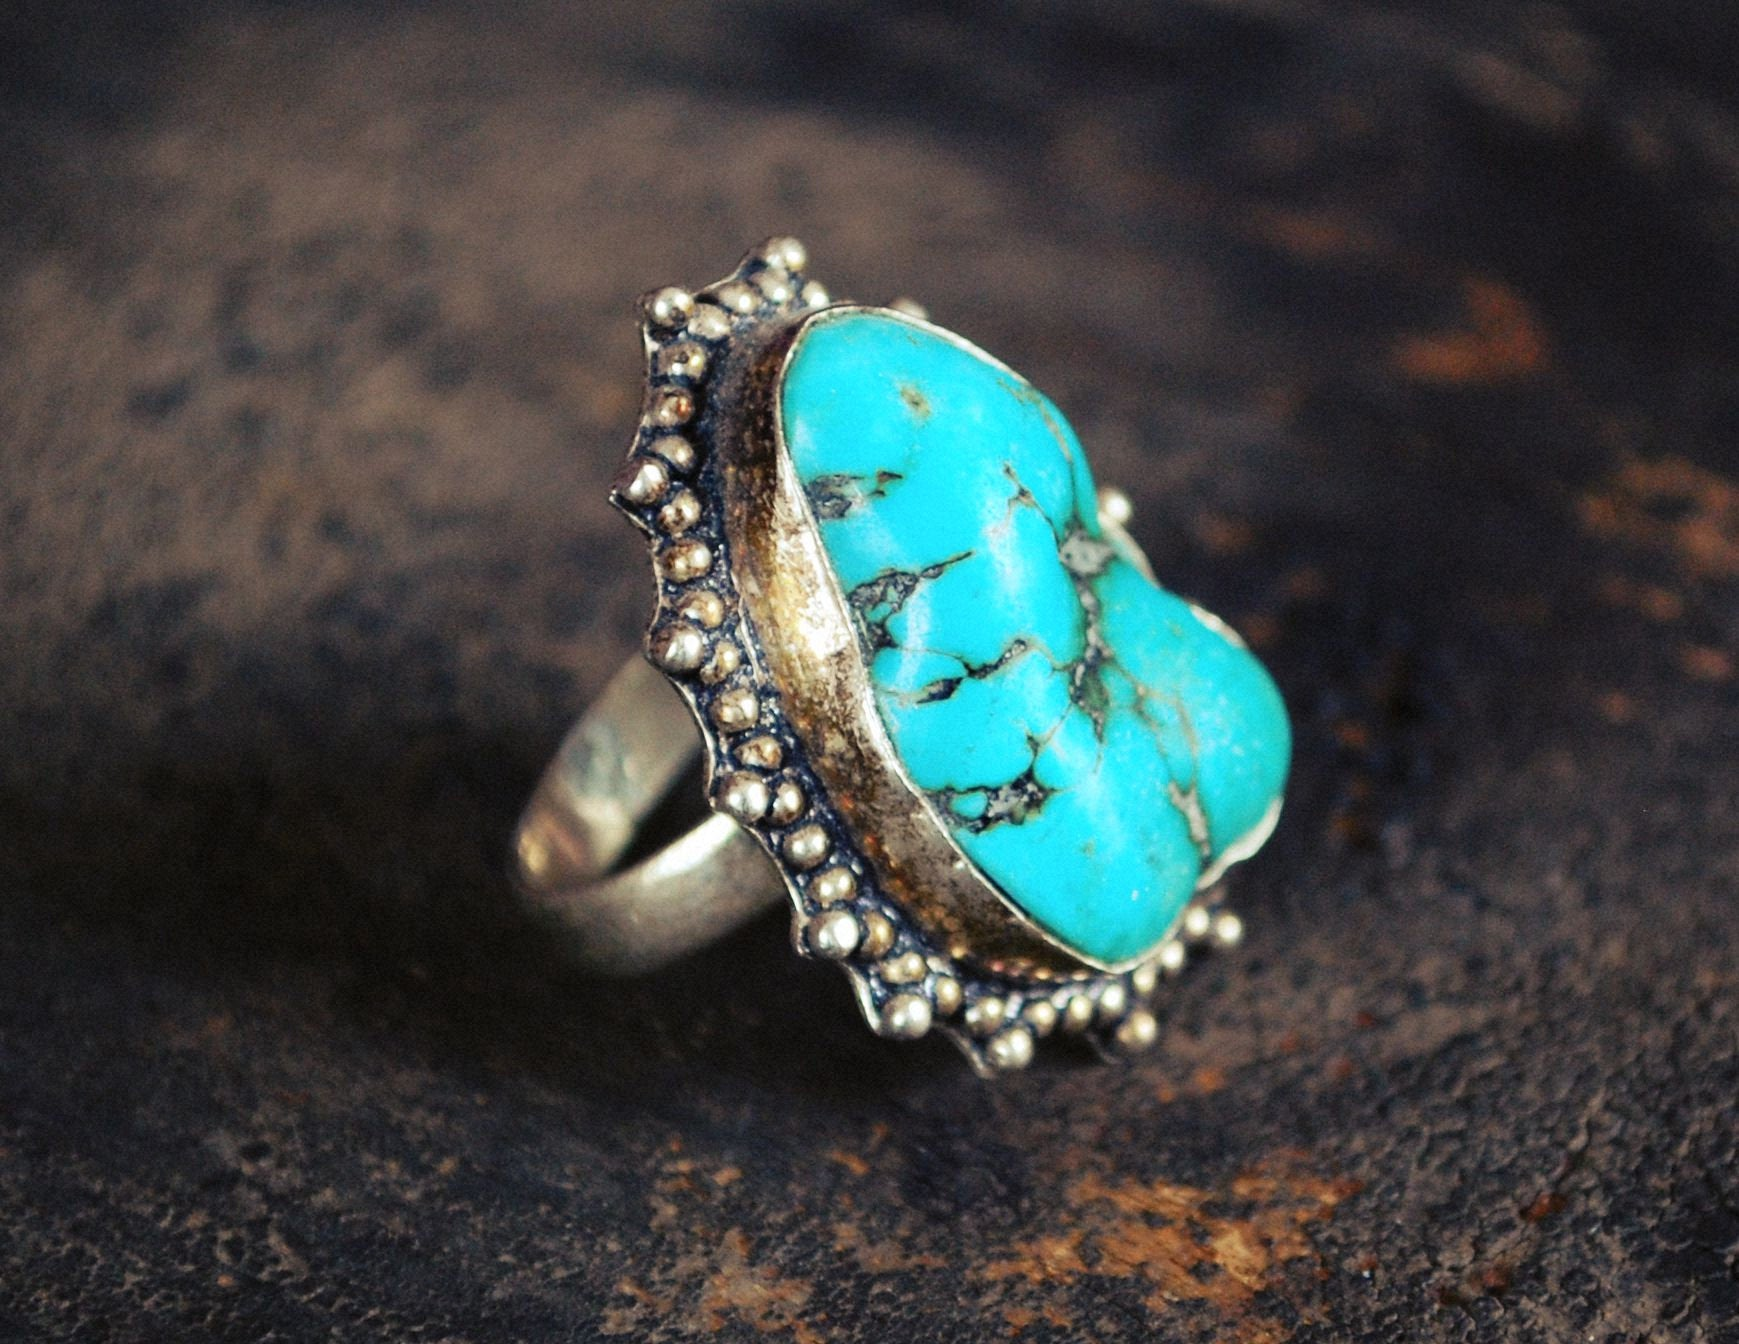 Indian Turquoise Nugget Ring - Size 5 3/4